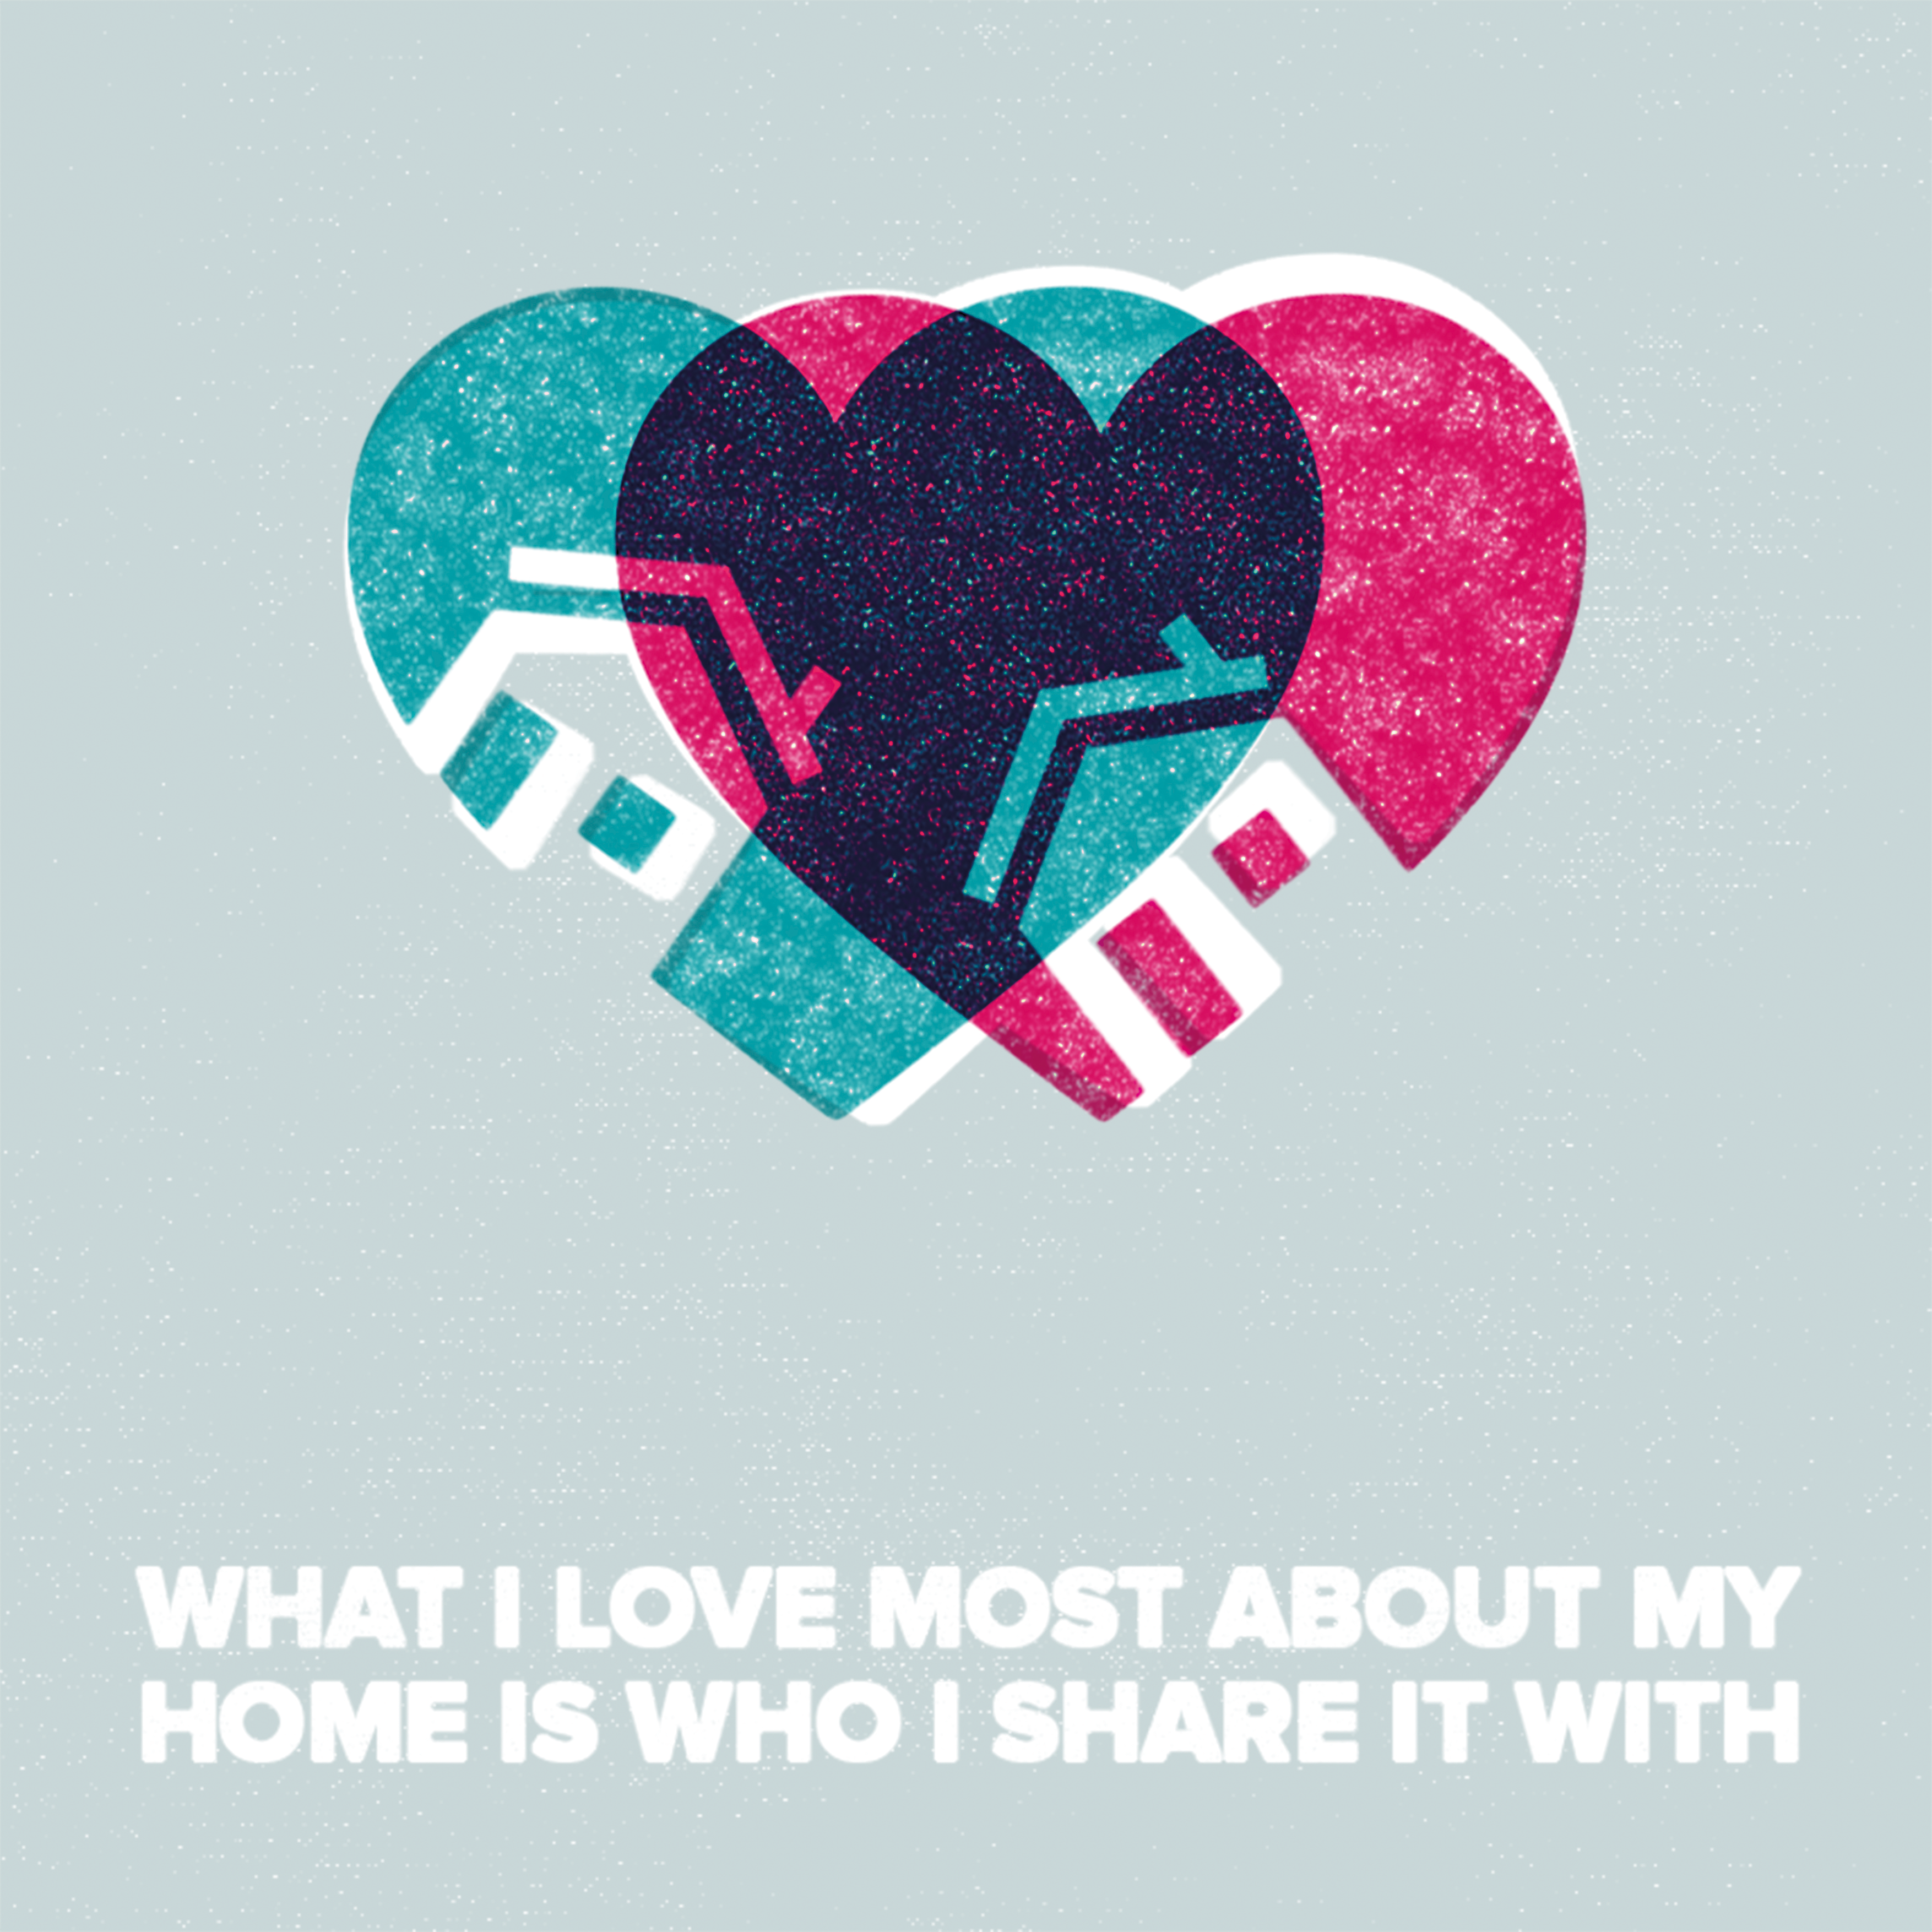 I Just Love This House: Free Printable Artwork For Your Home